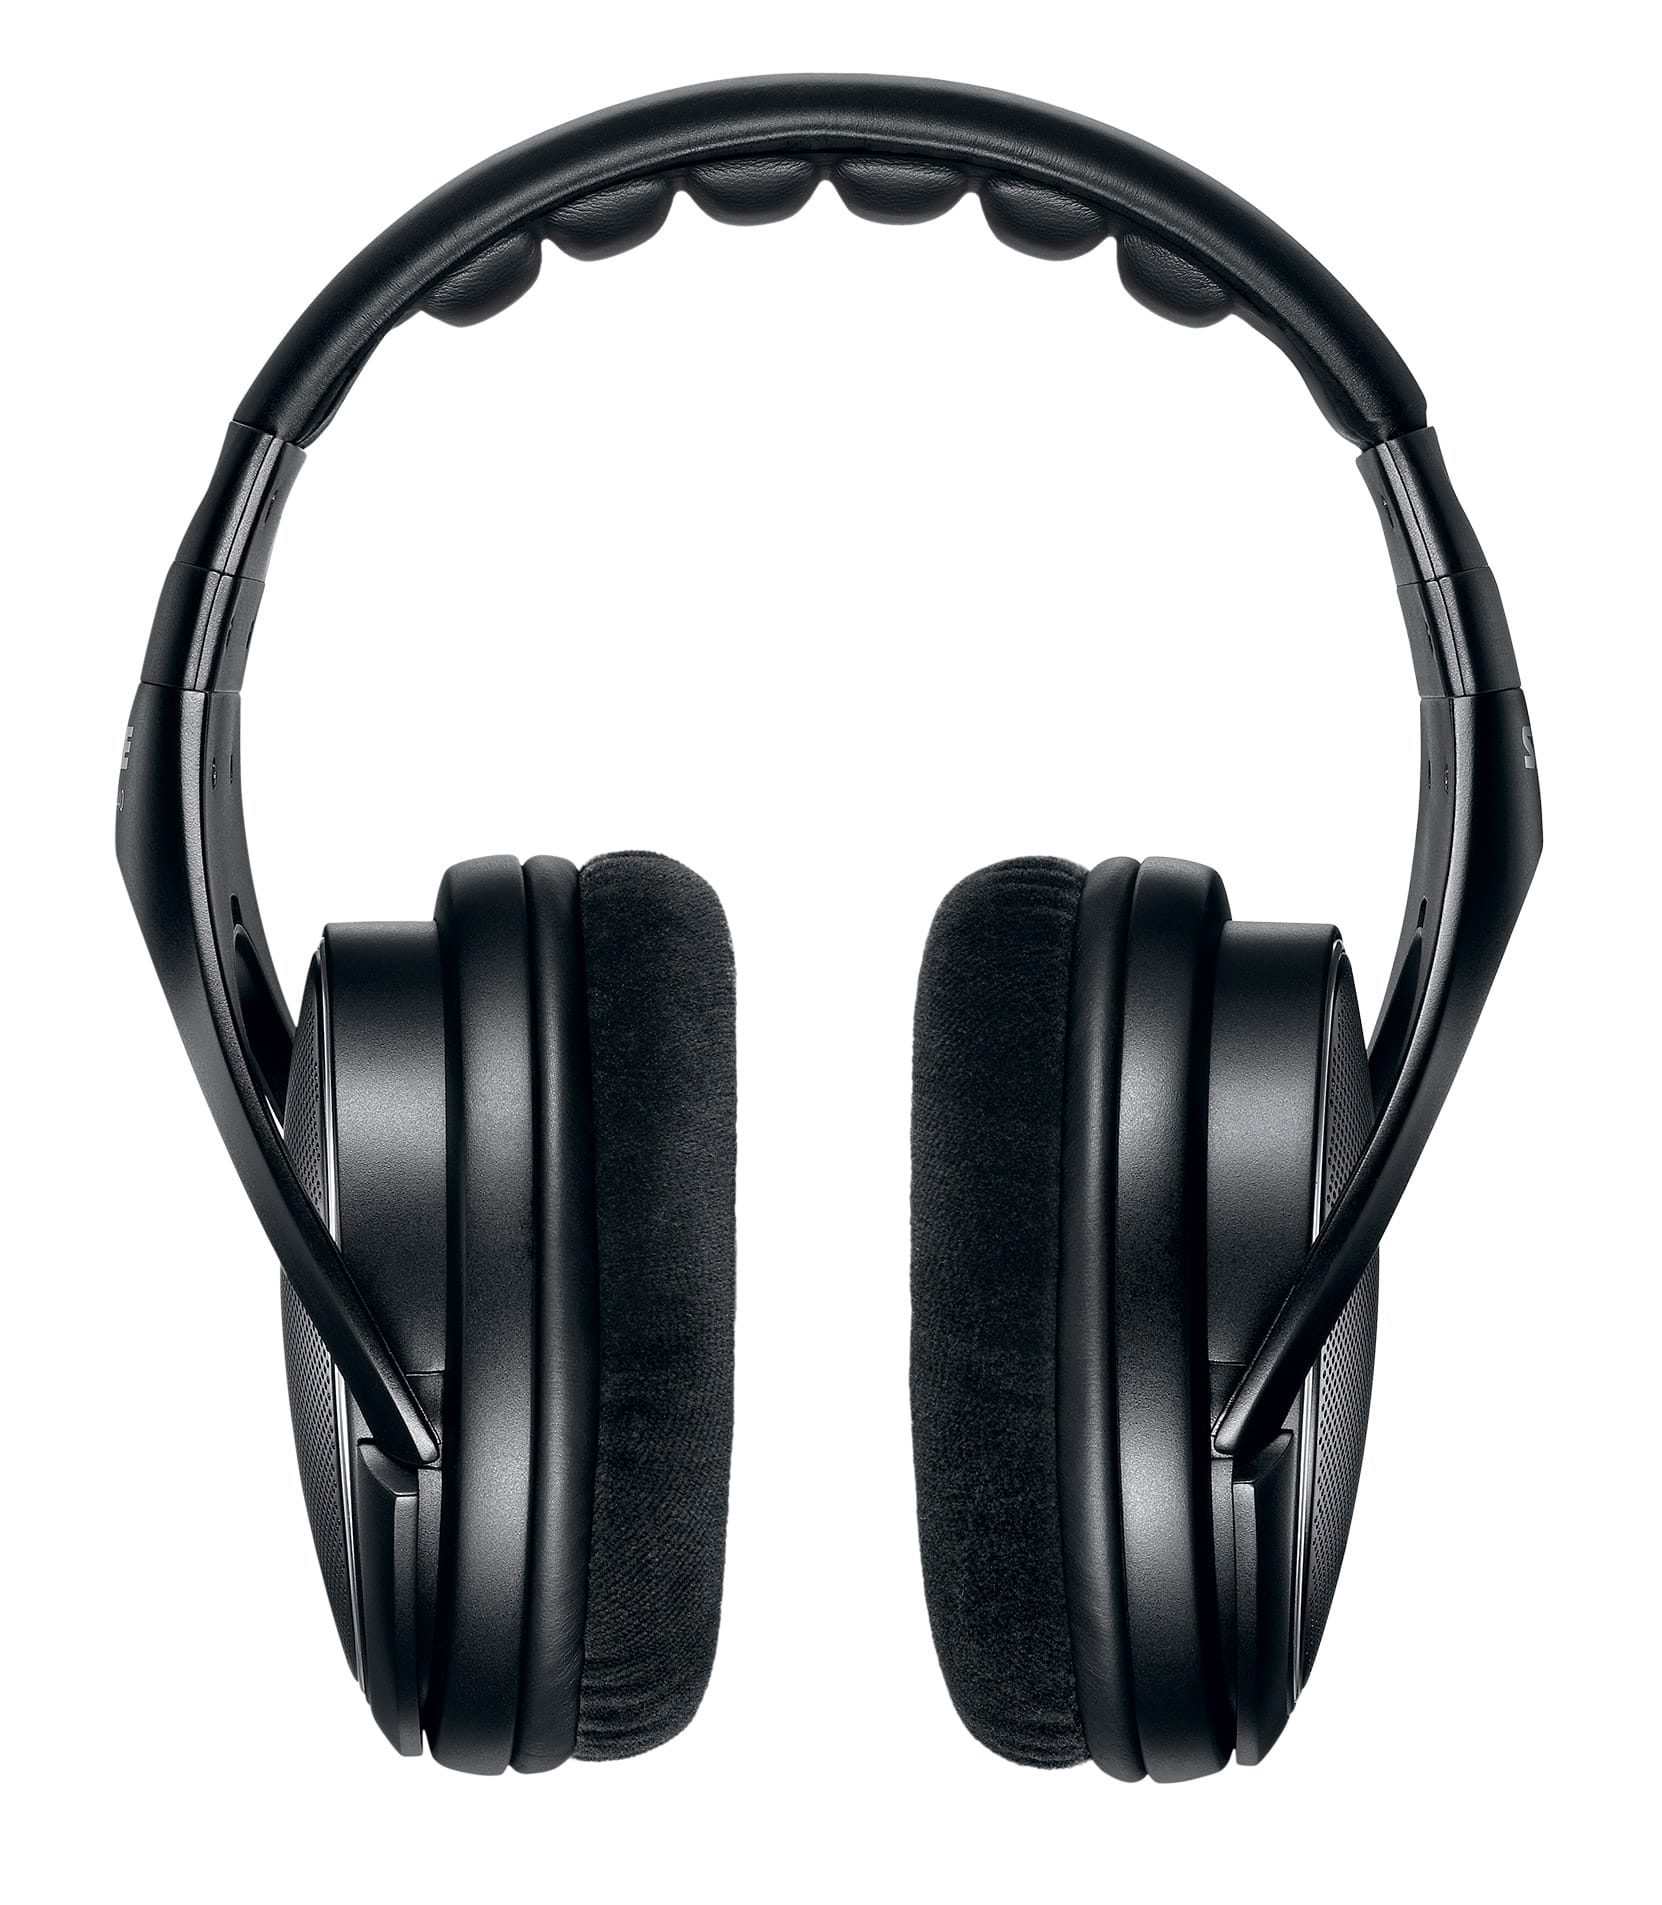 SRH1440 Professional Studio Headphones